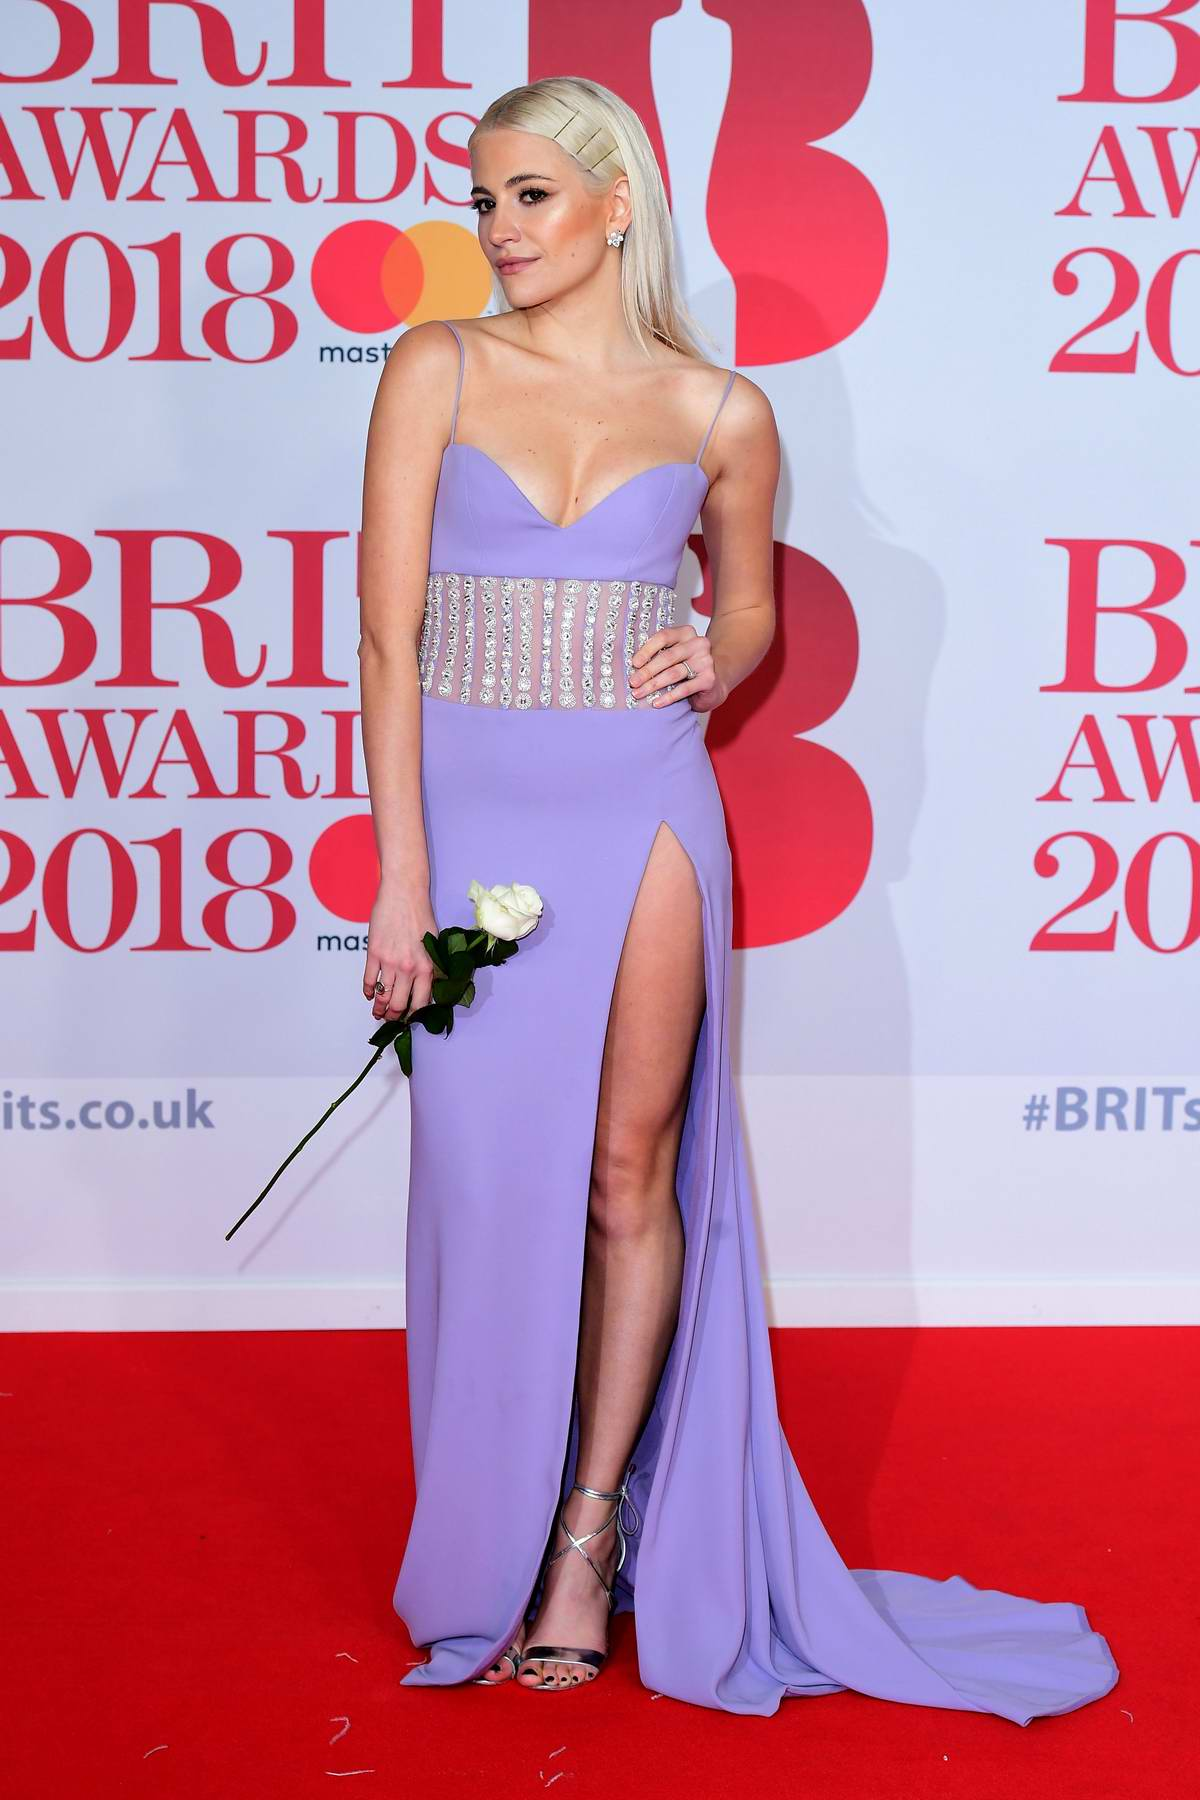 Pixie Lott attends the 38th Brit Awards, held at the O2 Arena in London